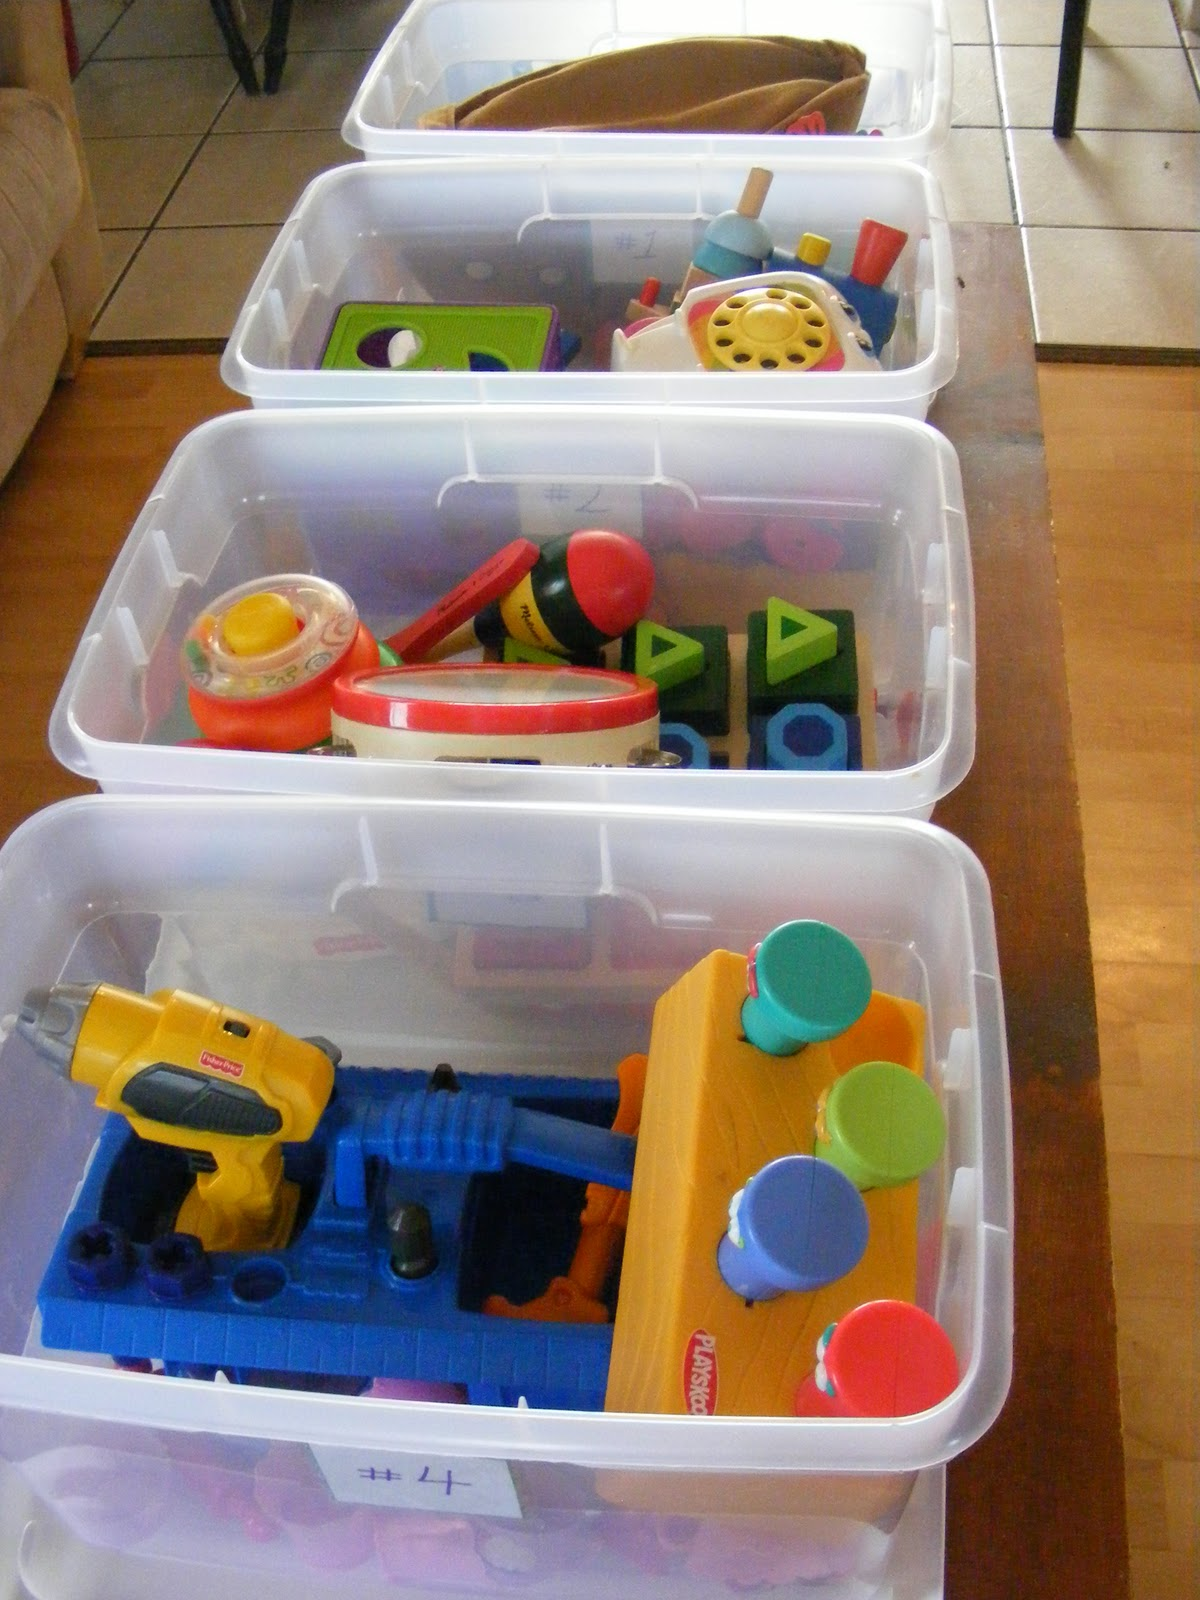 The plete Guide to Imperfect Homemaking Toy Rotation Bins